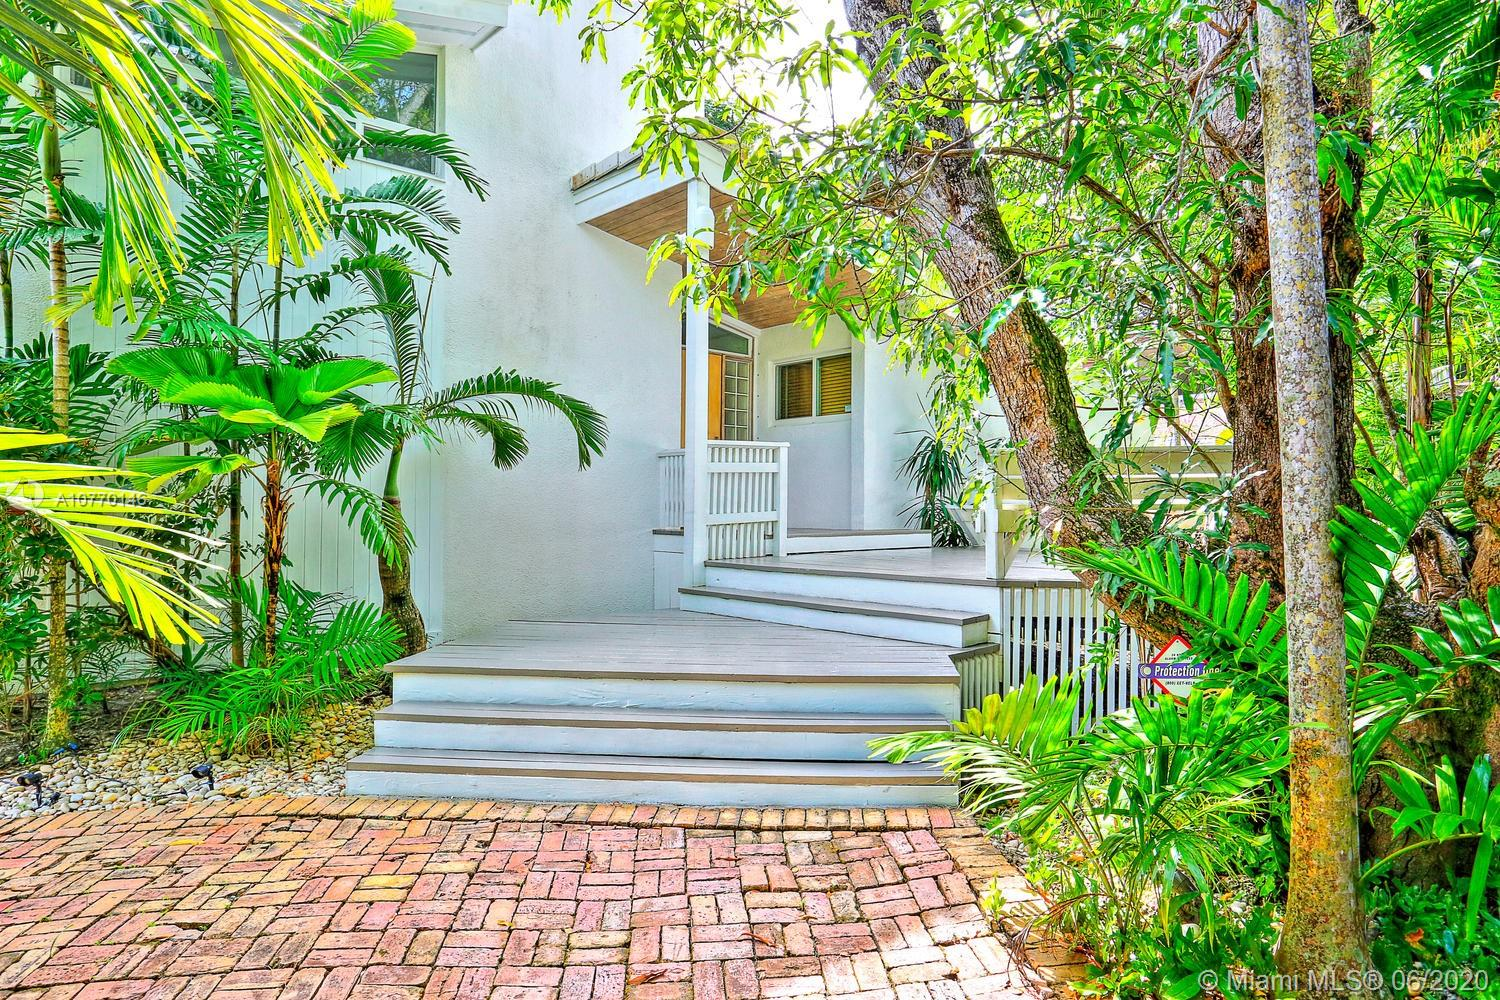 Stunning, coastal contemporary-style home set back within a lush tropical hammock of exotic palms & mature oaks. Light-filled living spaces w/dramatic, vaulted wood beamed ceilings & natural finish, wide-plank cypress flooring. Multi-level layout offers expansive living & dining areas w/walls of glass overlooking the pool & garden.Totally renovated, european-style kitchen features wood cabinetry, stone countertops, gas cooktop, double wall-ovens & wine refrigeration.Enjoy outdoor living & entertaining on the covered terrace w/wet bar that overlooks the ultra-private pool surrounded by travertine pavers.Additional renovations include: impact windows, roof, 3 new AC systems, Trex decking on roof-top terrace & wrap-around balcony. Walk to the Grove village's boutiques, cafes & bayfront parks.